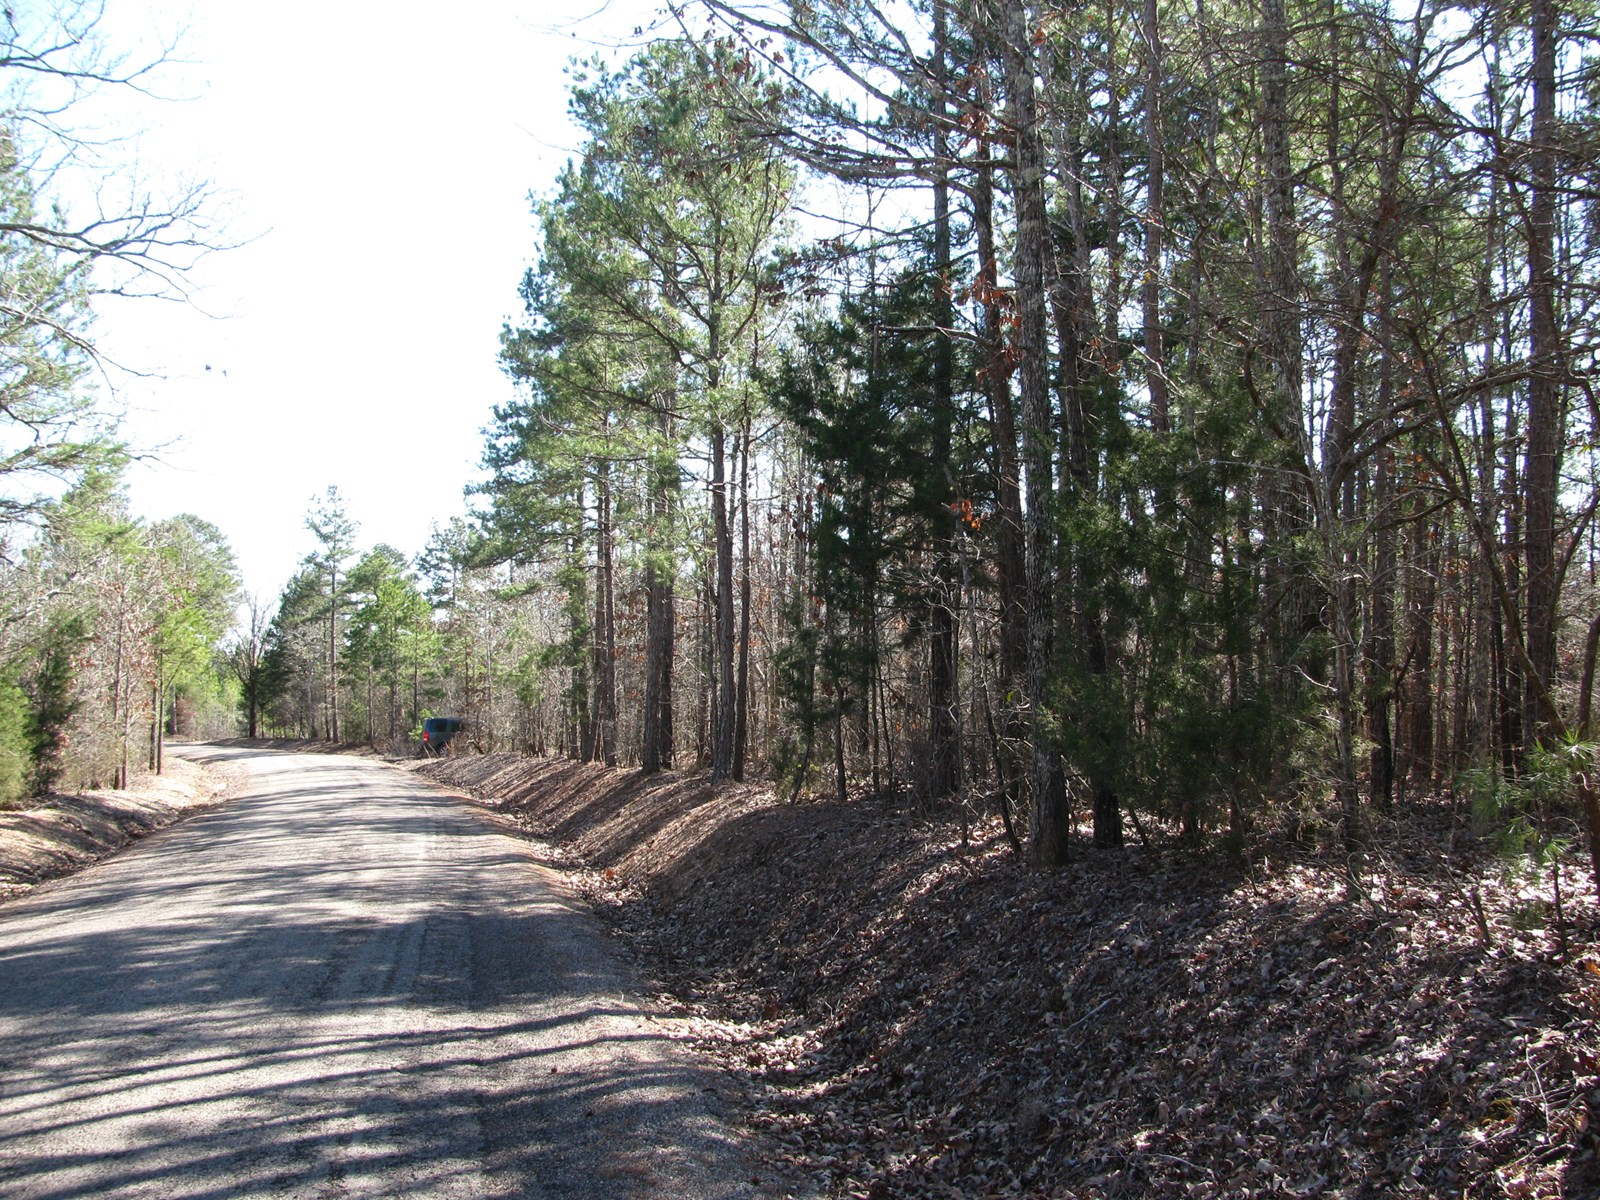 5 ACRES FOR SALE IN TENNESSEE, COUNTRY SETTING, WOODED